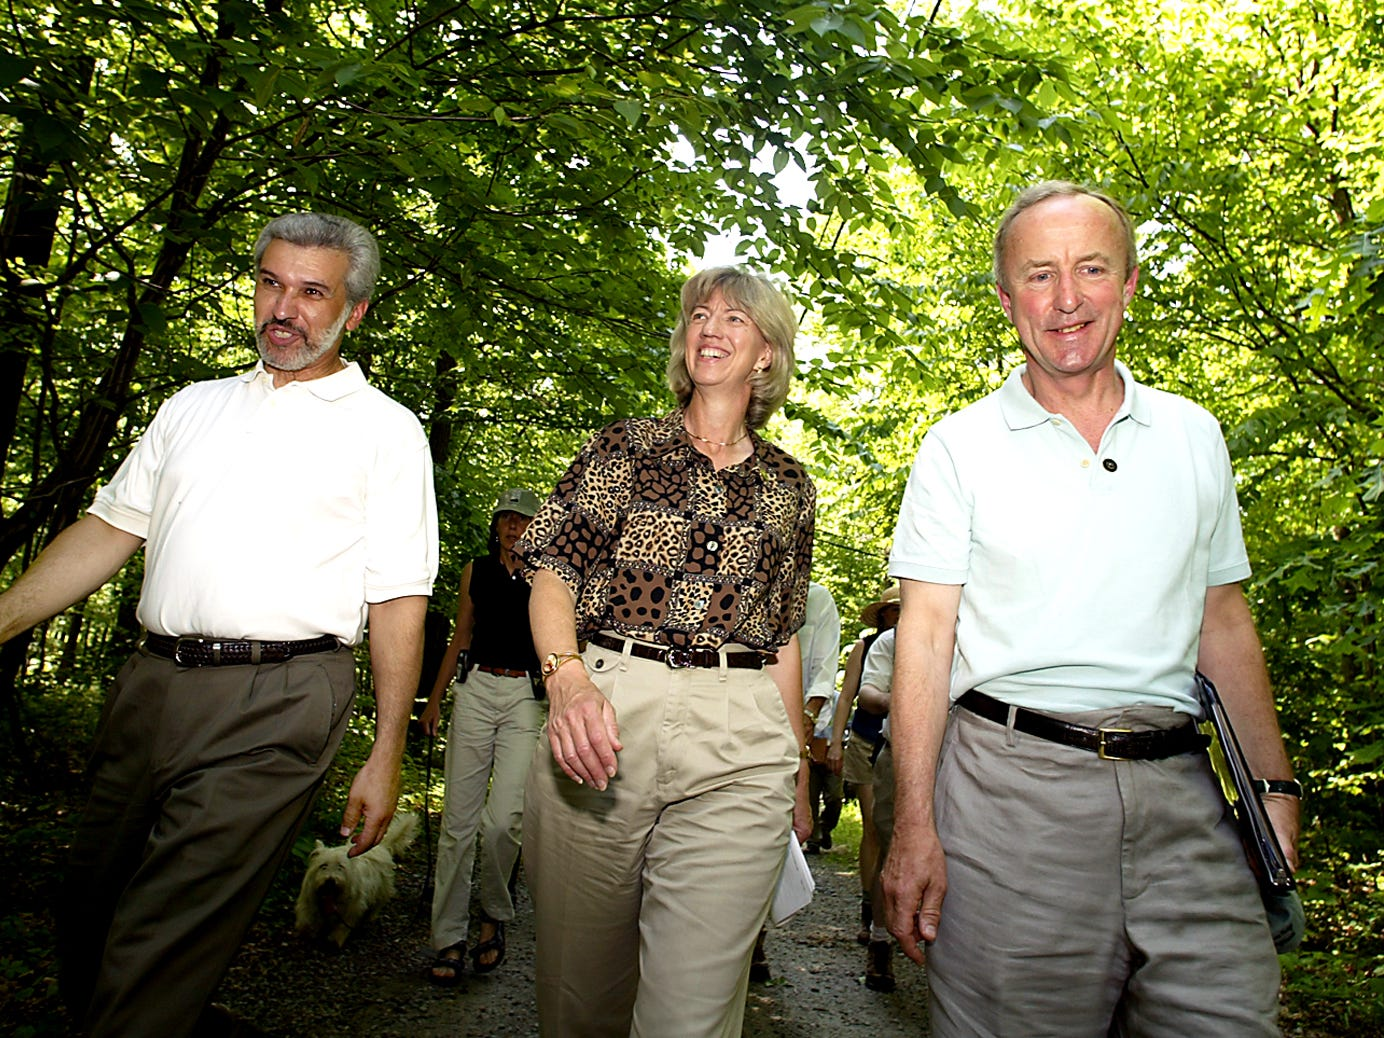 Rockaway Twp--May 22, 2004--Mayor of Rockaway Twp Lou Sceusi, l, US Secretary of the Interior Gale Norton and Congressman Rodney Frelinghuysen walk up to a lookout at Wildcat Ridge for a news conference about the Highlands.